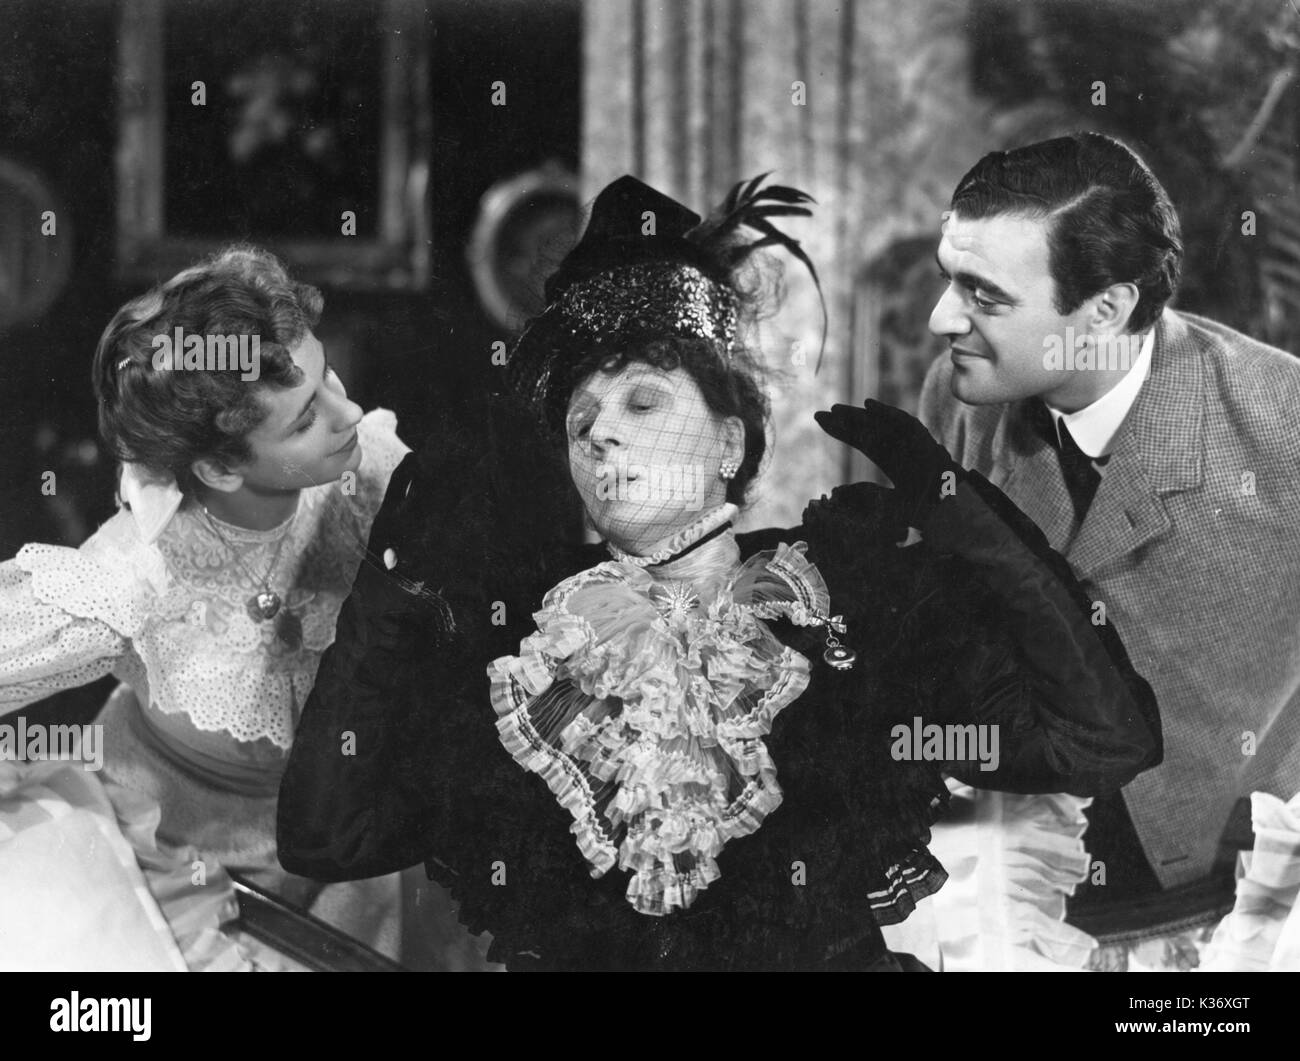 Communication on this topic: Hilda Simms, edith-evans-stage-and-film-roles/